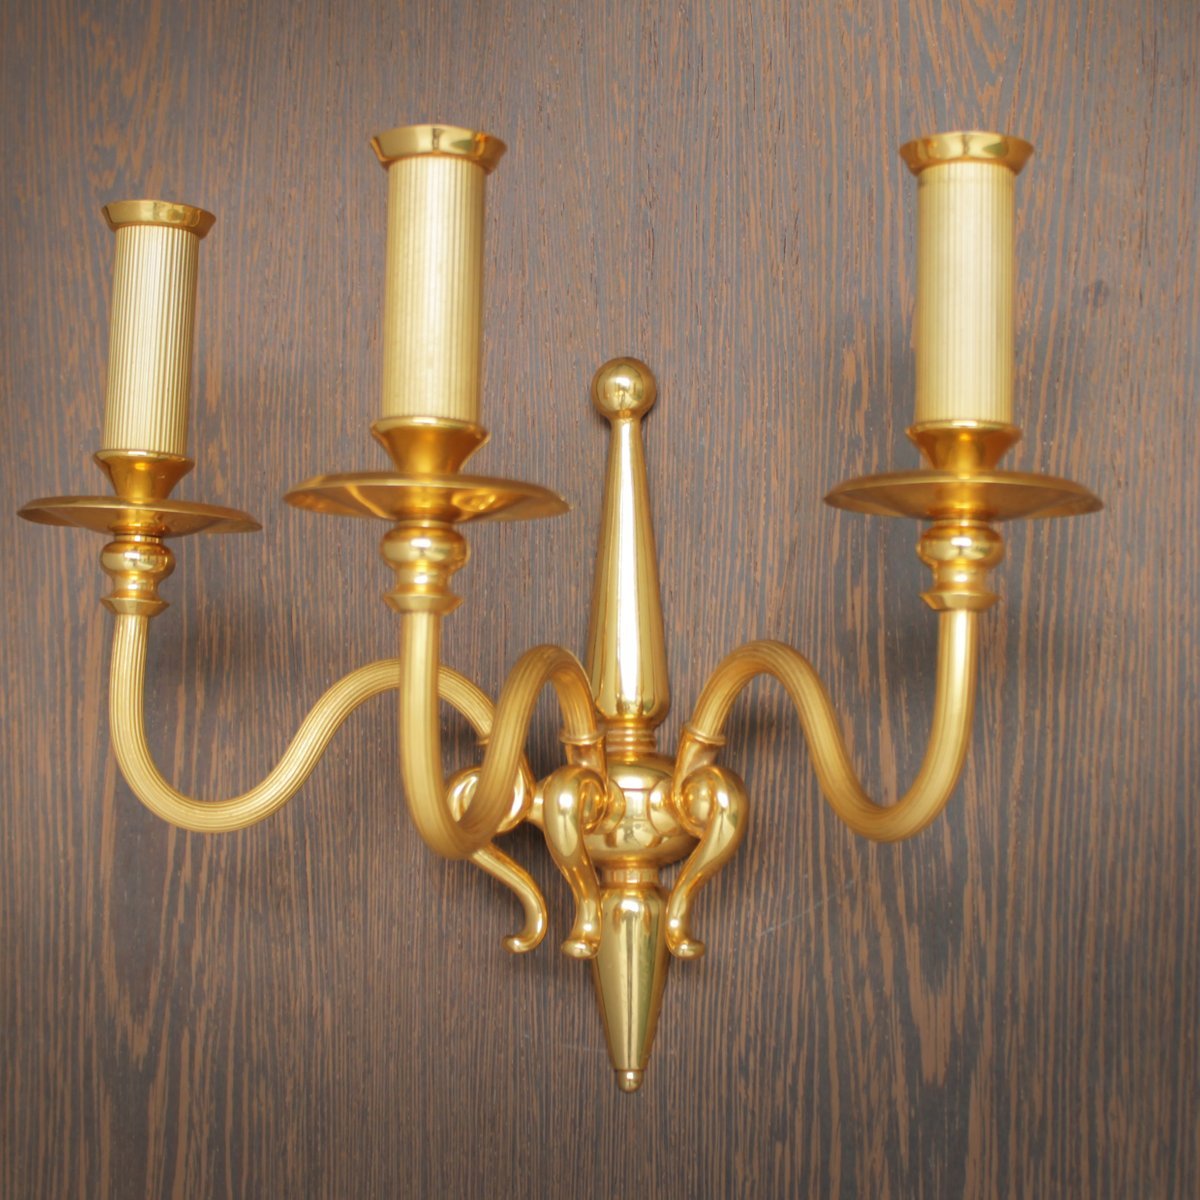 Wall Sconces Gold : Gold Plated Wall Sconces from Lumi Milano, 1960, Set of 2 for sale at Pamono